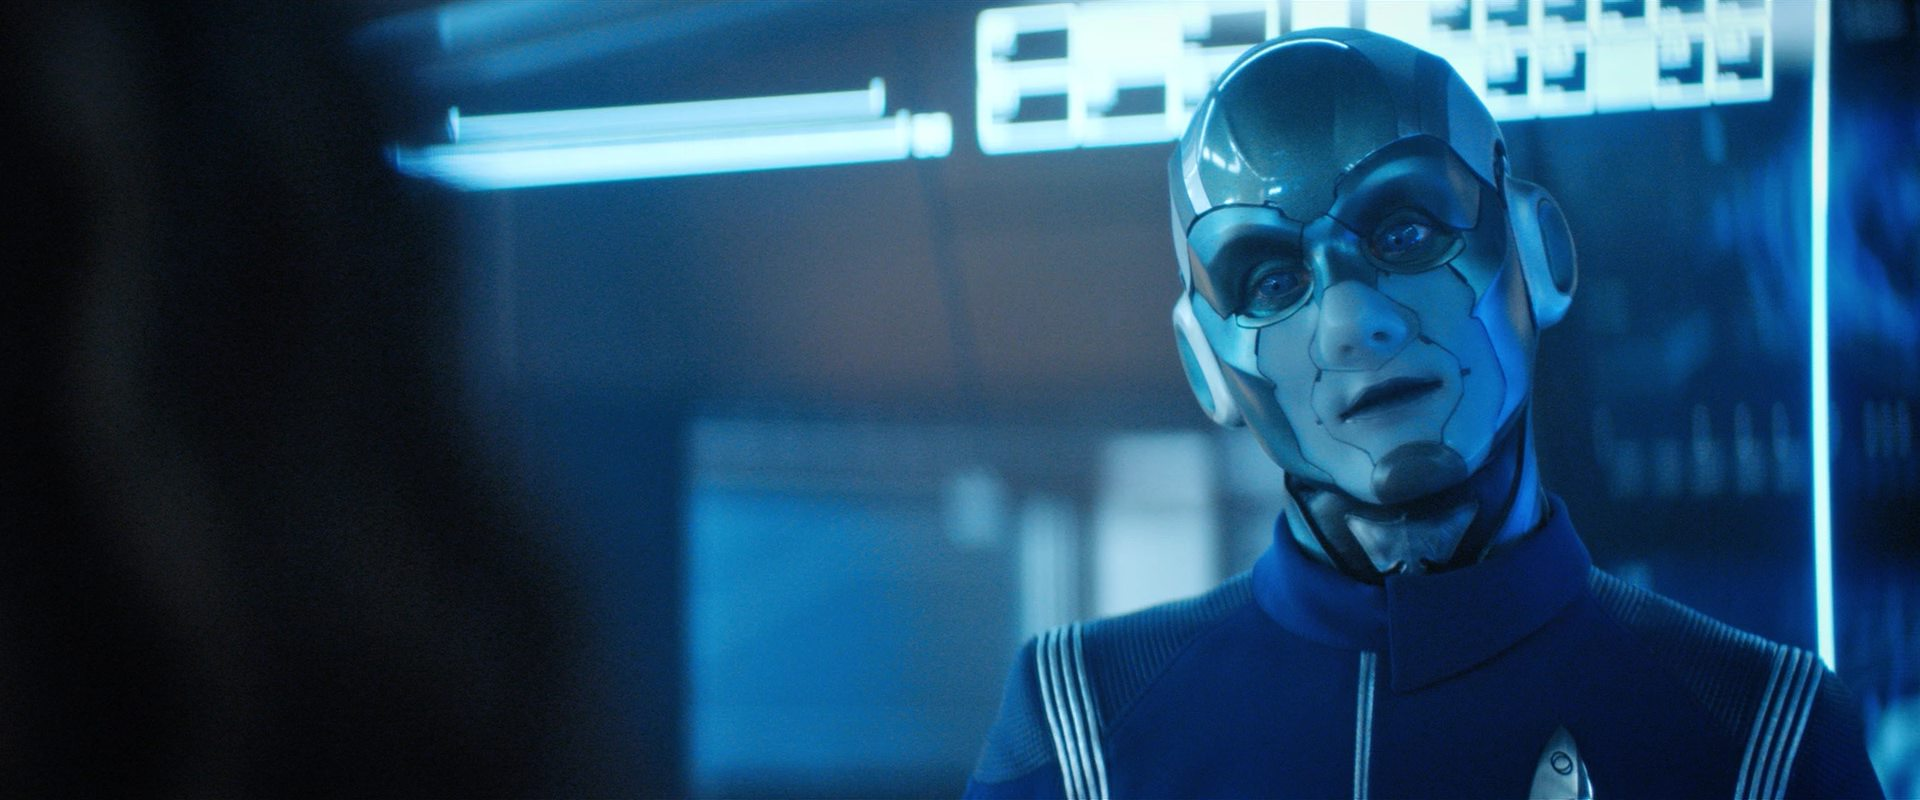 extant_StarTrekDiscovery_2x09-ProjectDaedalus_02275.jpg